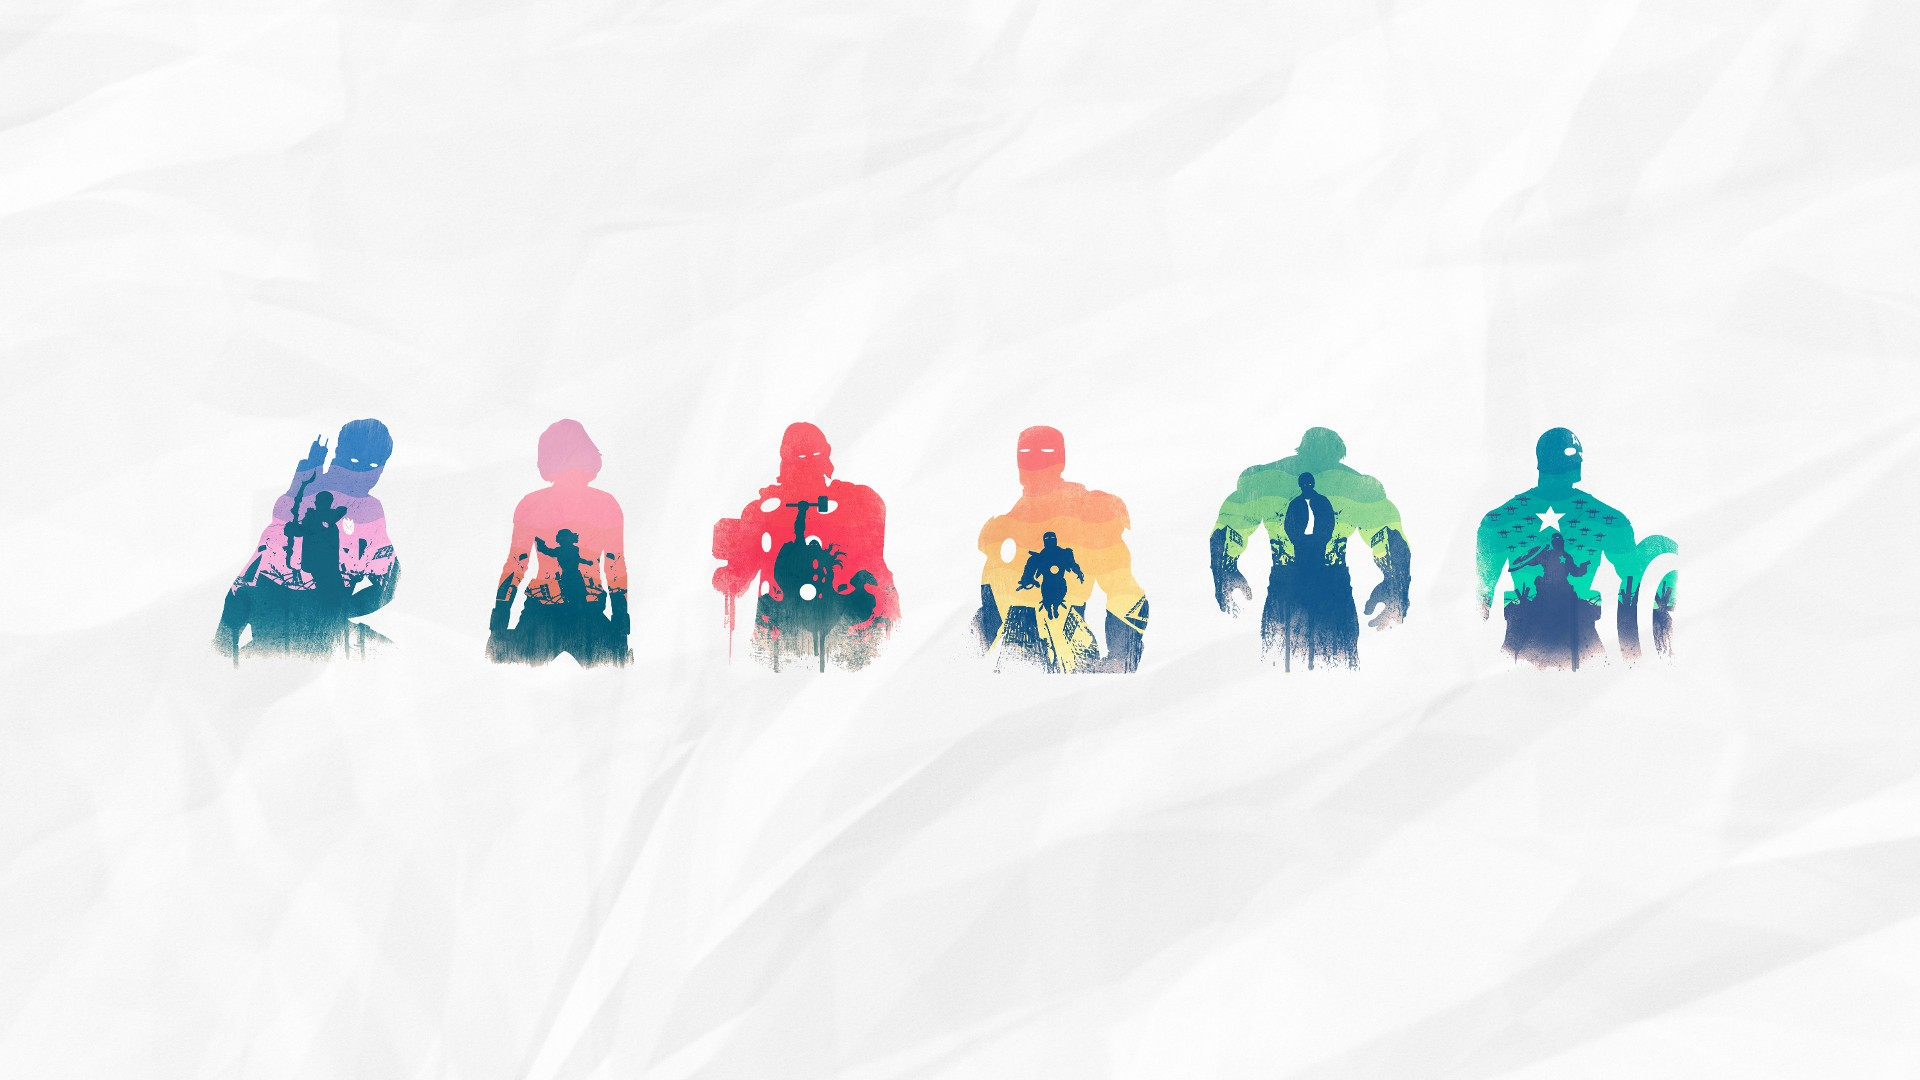 Simple Wallpaper Mac Marvel - the-avengers-silhouettes_wallpapers_34745_1920x1080  Graphic_47585.jpg